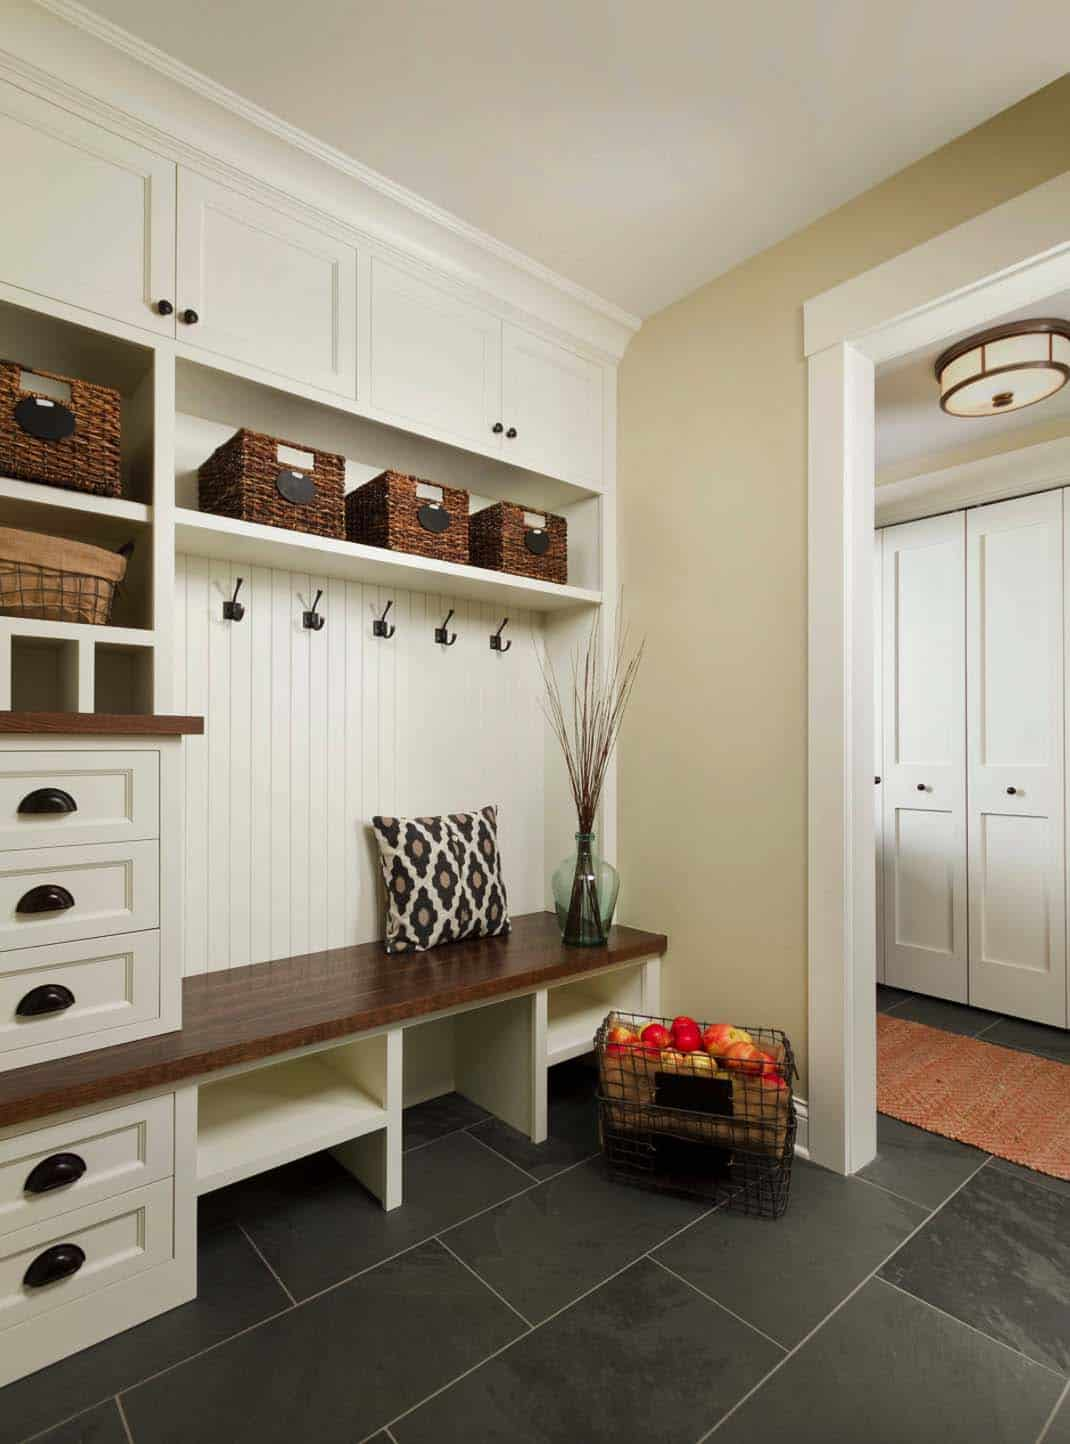 Mudroom Flooring Should Be Durable And Not Slippery Beadboard Paneling Painted In A Semigloss Finish Is The Wall Material Behind Built Bench